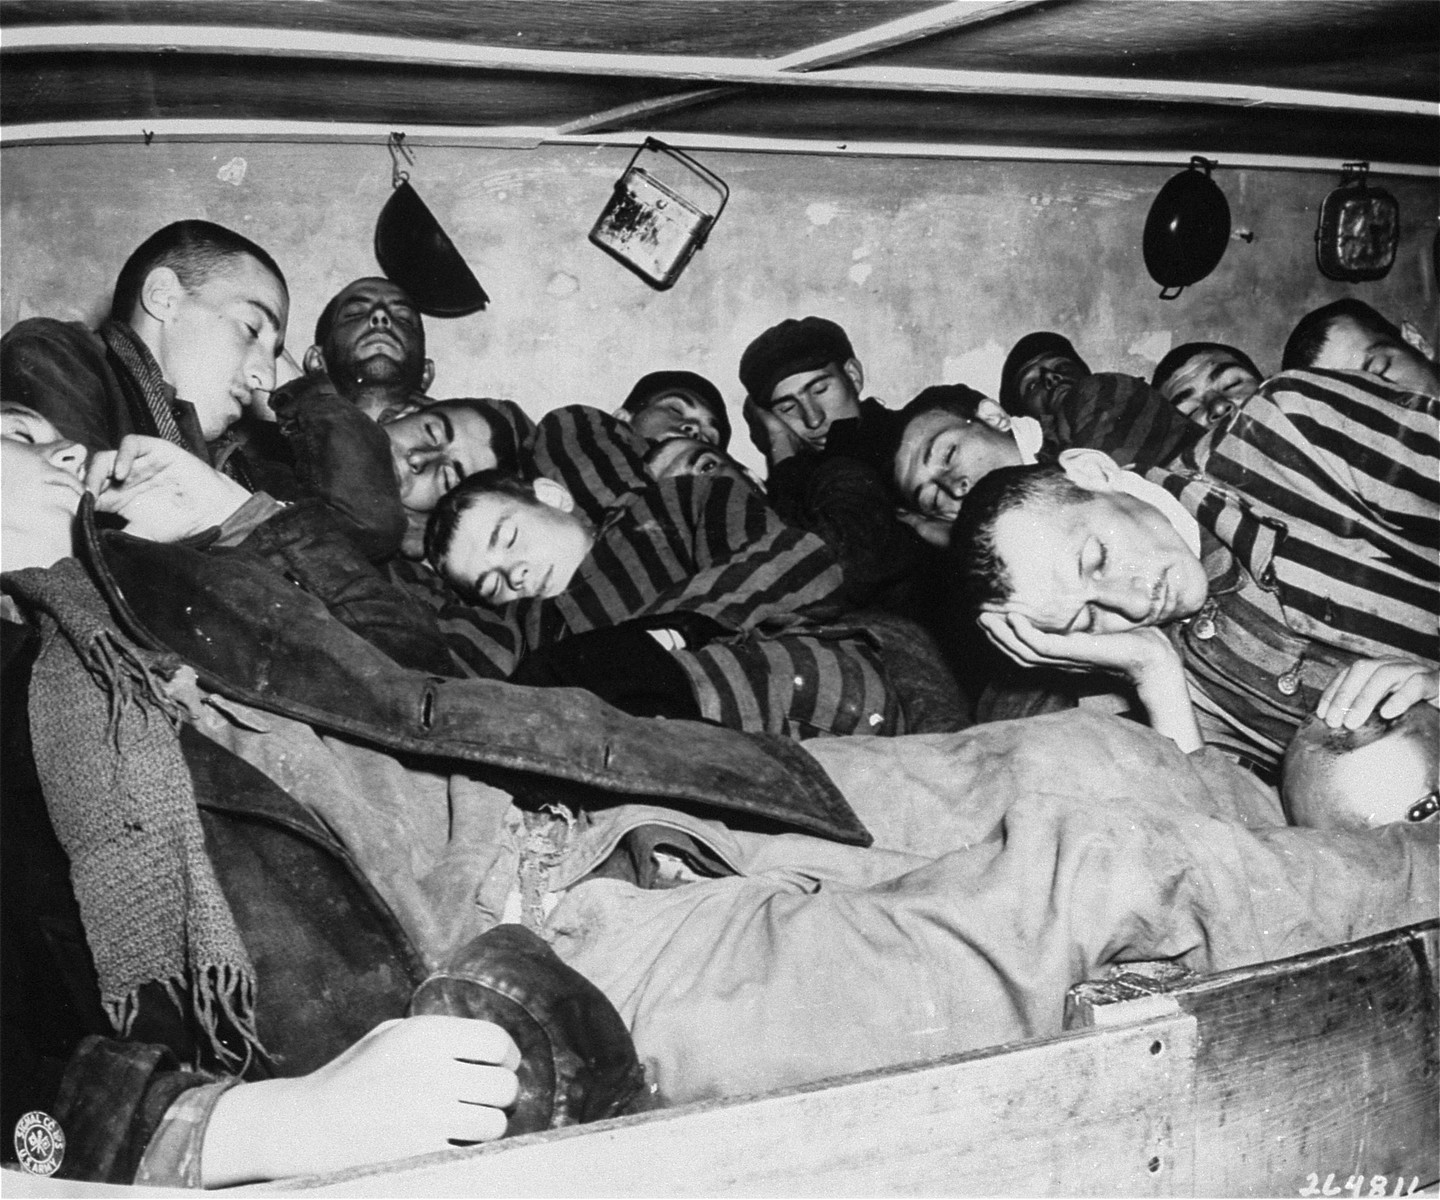 Survivors in Dachau packed into overcrowded sleeping quarters, where 7 men had to share 2 small beds. The bunks were three-tiered, and anywhere from 350 to 800 men slept in a room crowded with 120 beds.